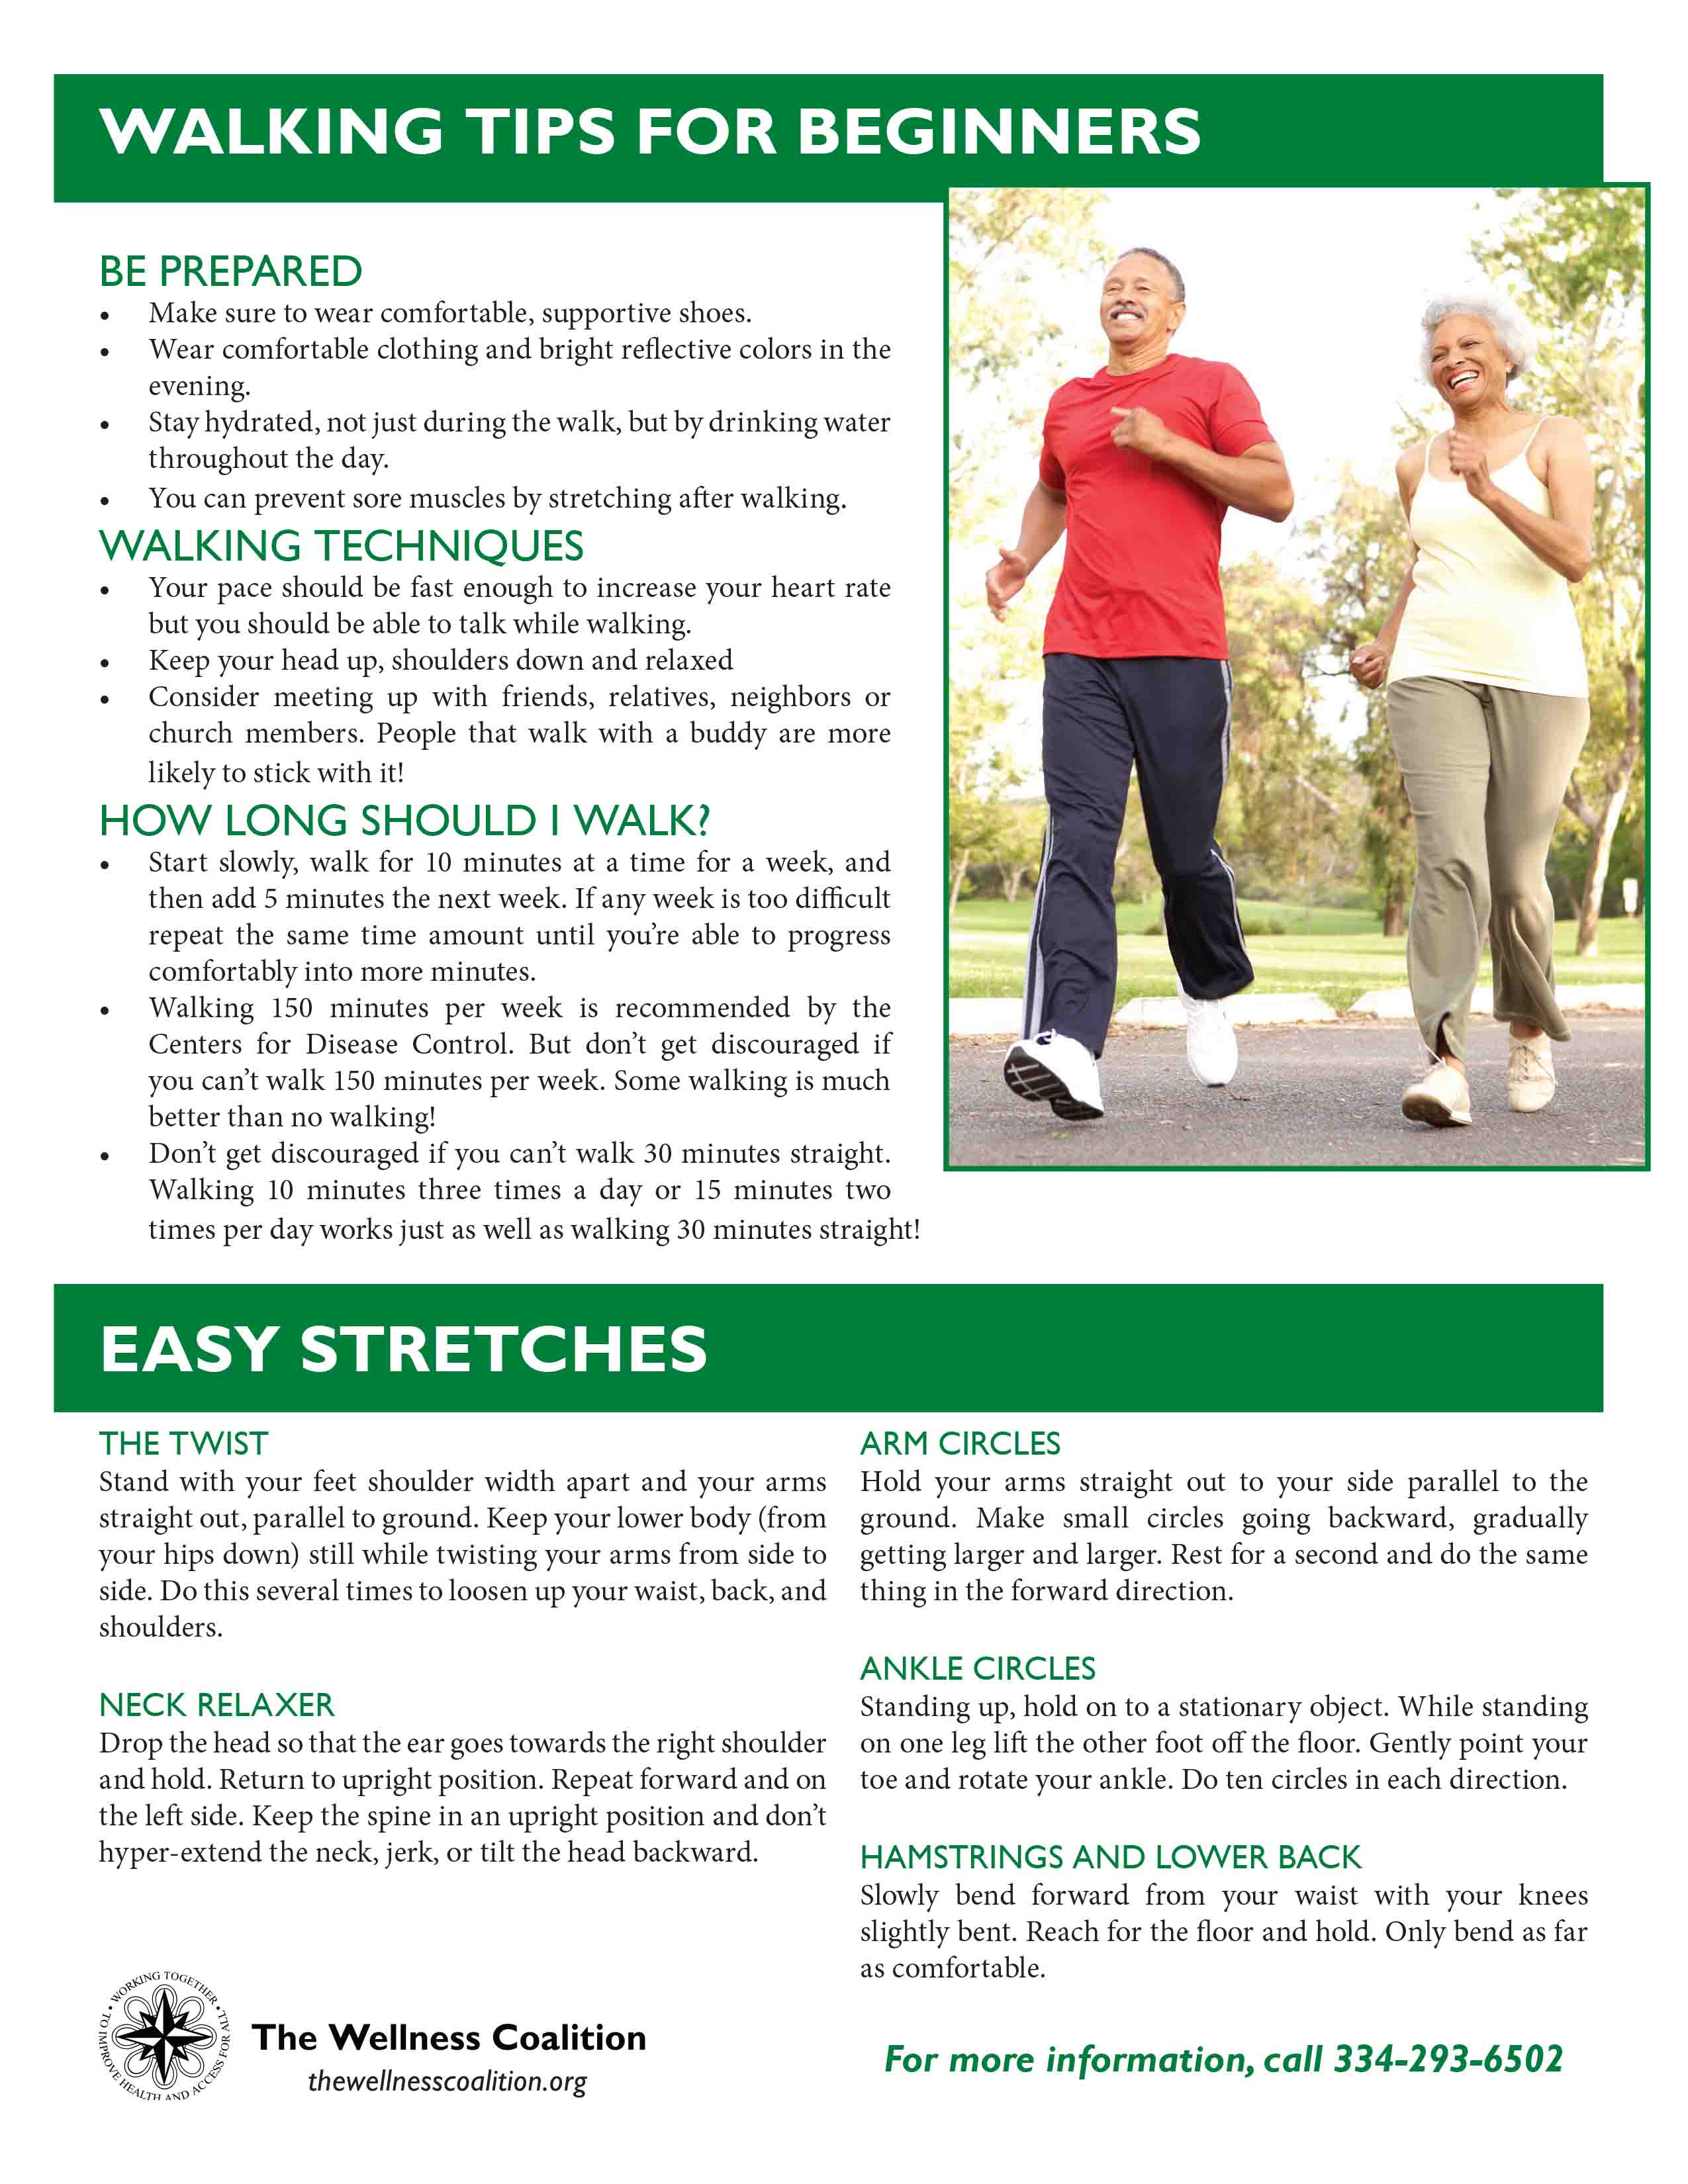 Walking Tips for Beginners and Easy Stretches